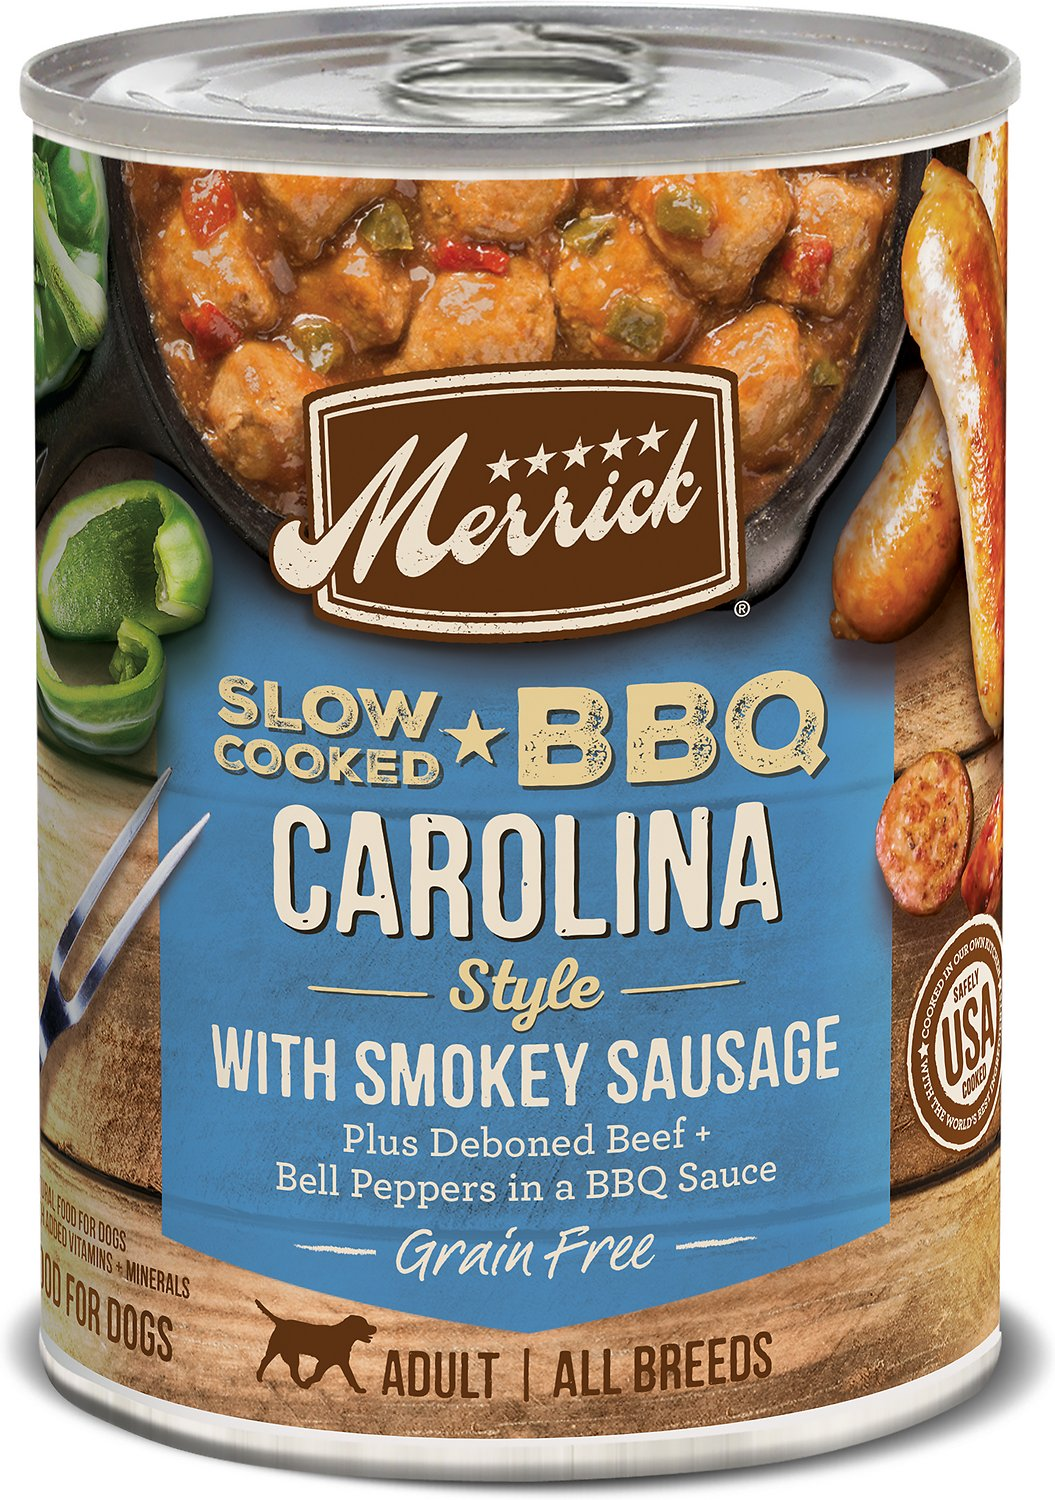 Merrick Slow-Cooked BBQ Carolina Style with Smokey Sausage Canned Dog Food, 12.7-oz